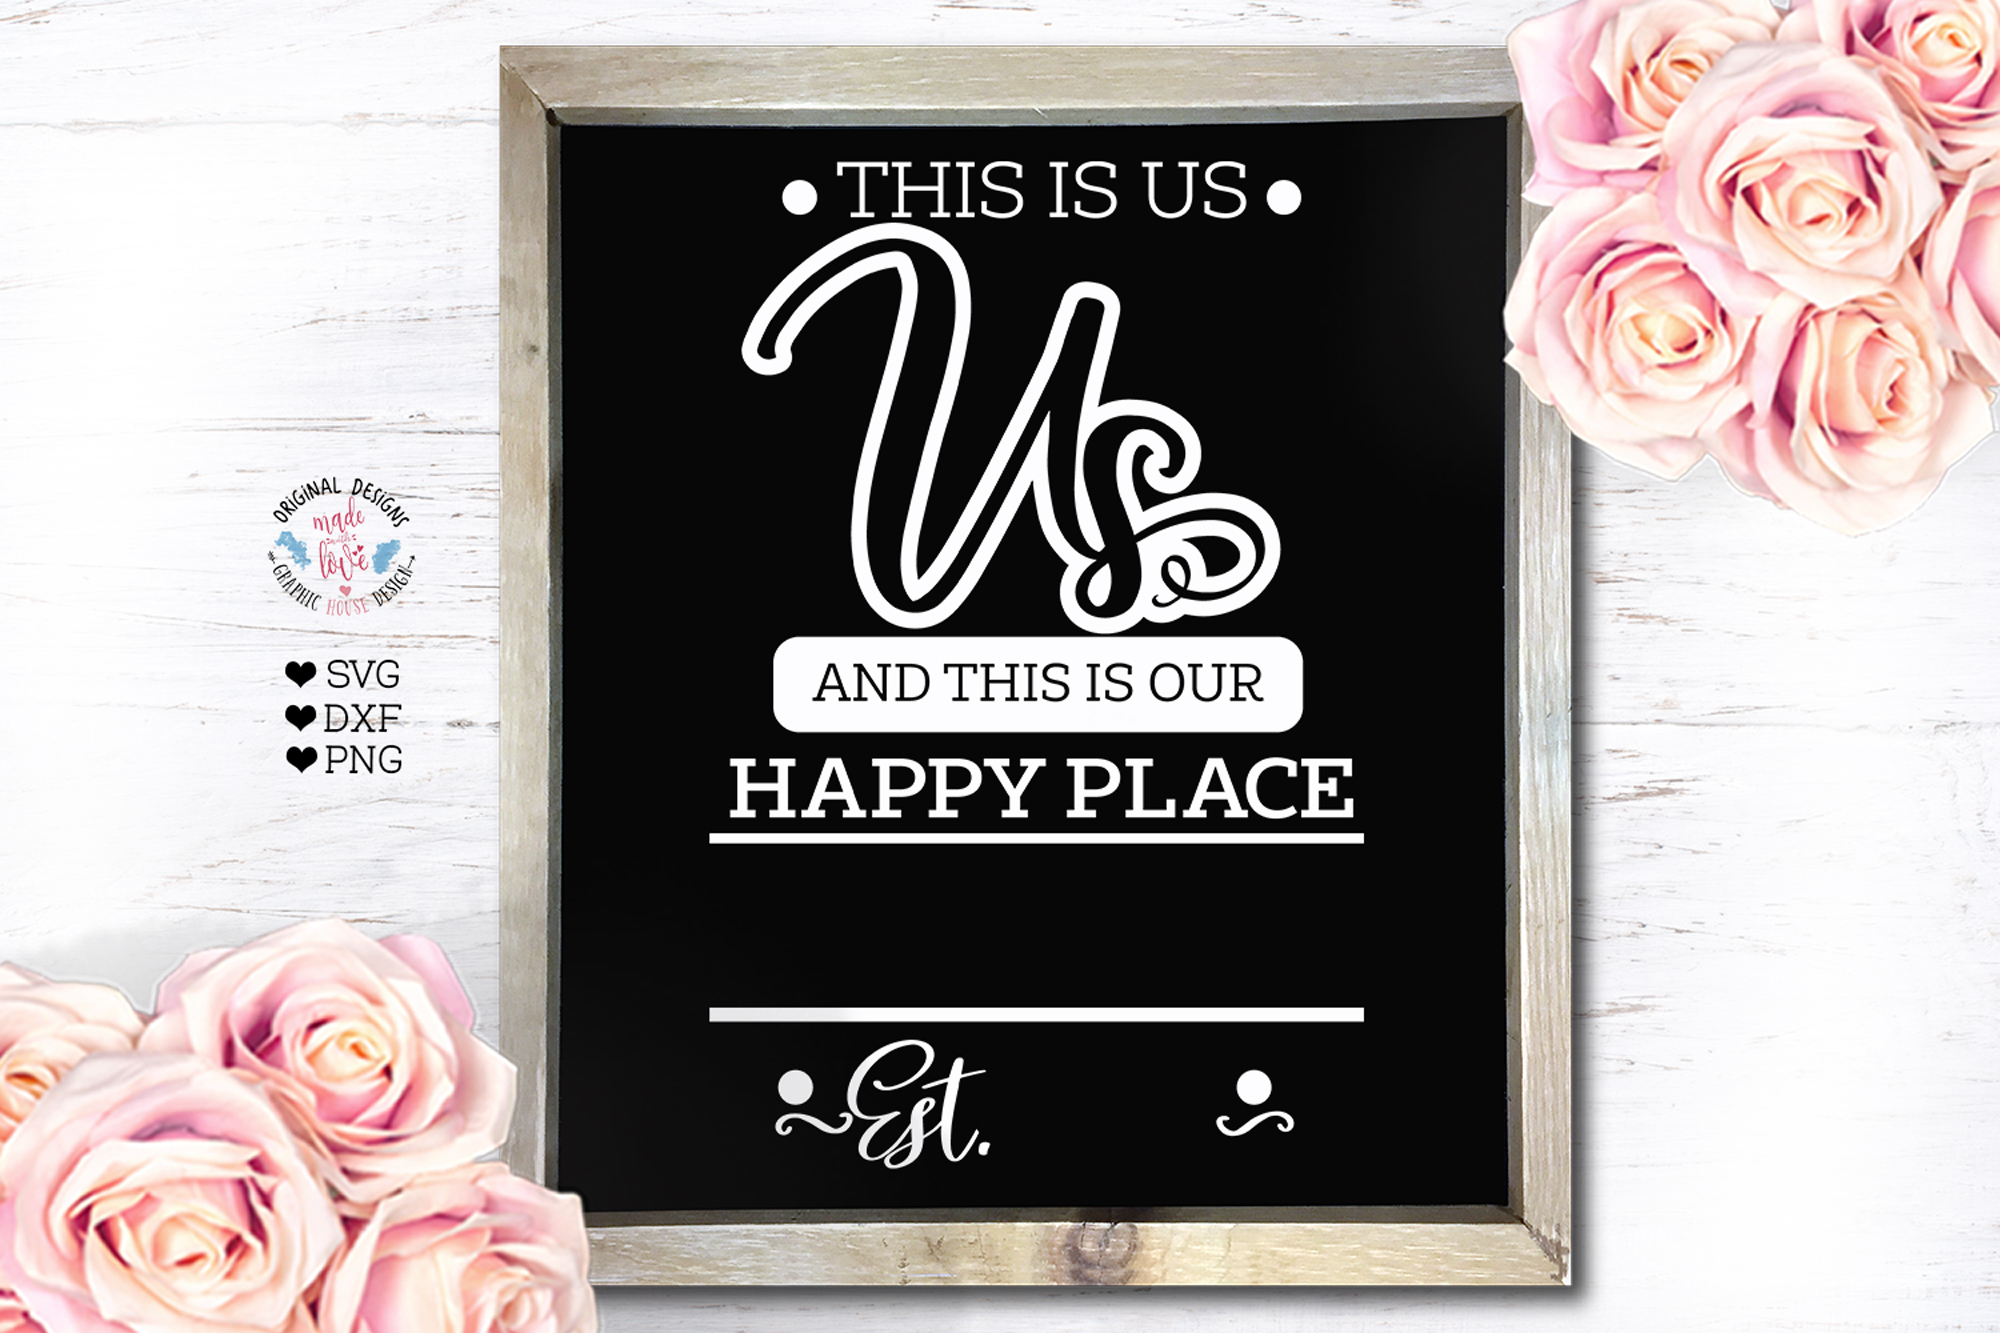 Download Free This Is Us And This Is Our Happy Place Graphic By for Cricut Explore, Silhouette and other cutting machines.